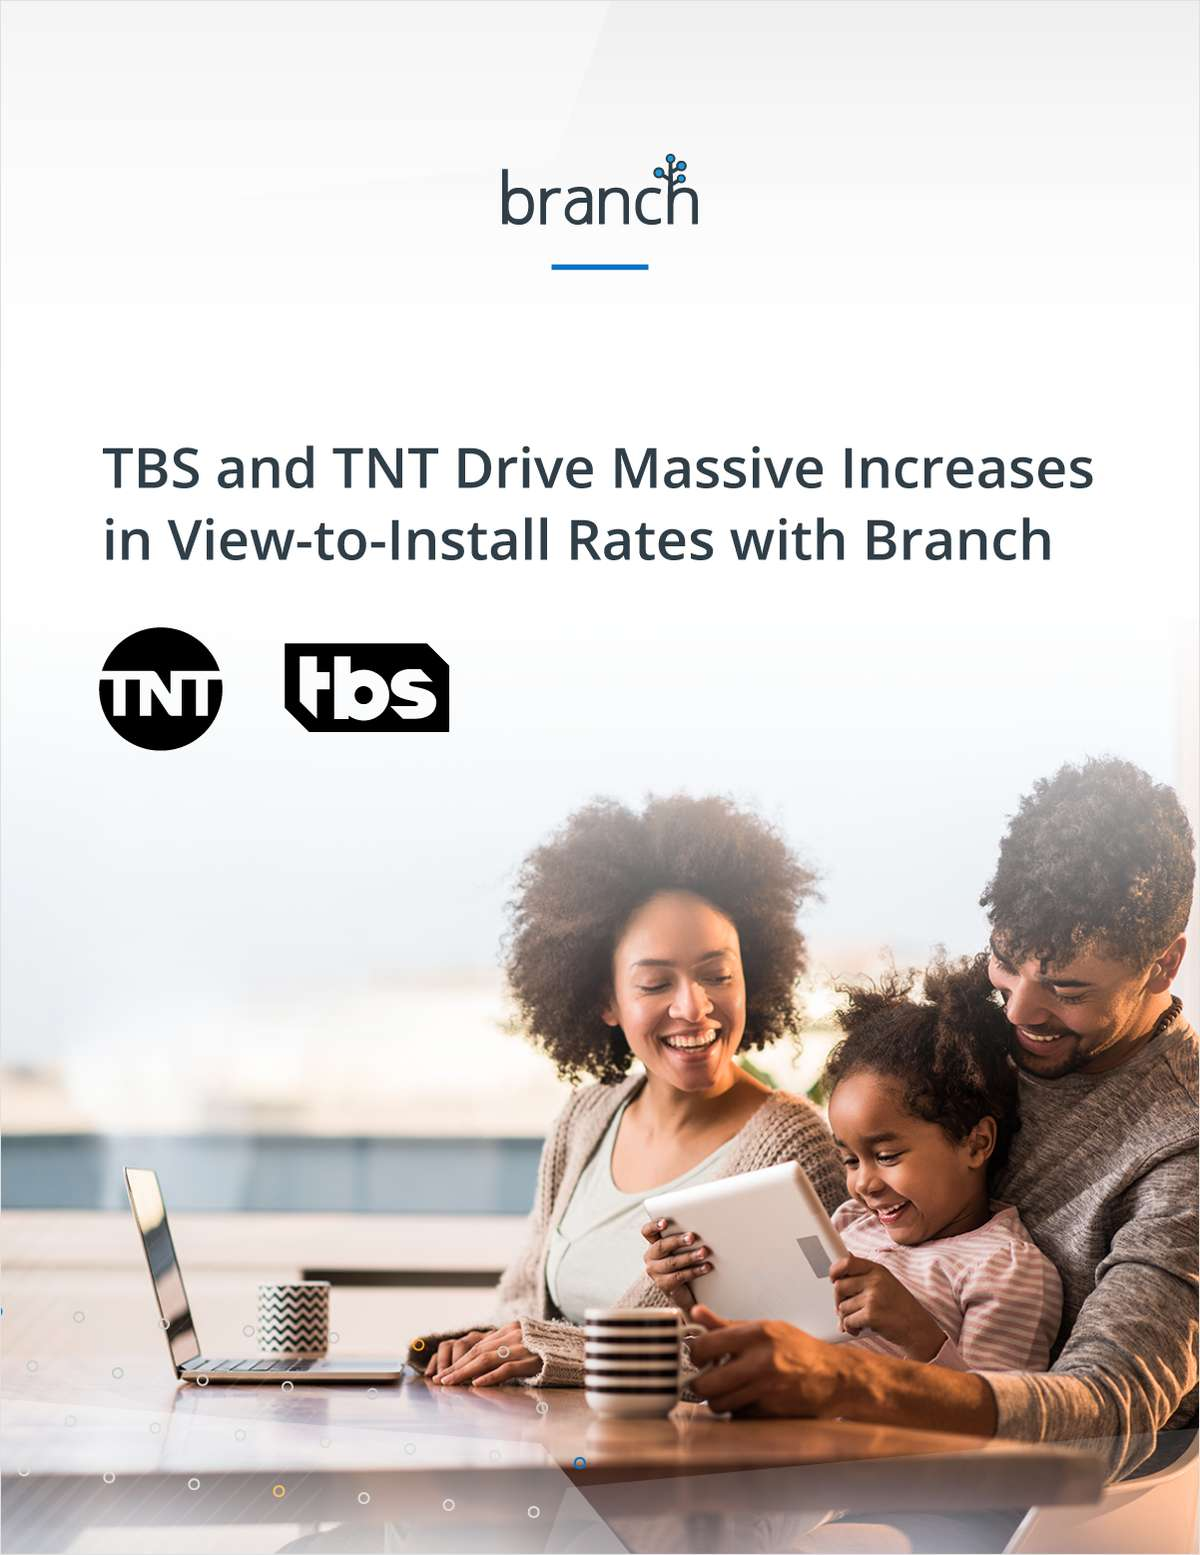 TBS and TNT Drive Massive Increases in View-to-Install Rates With Branch